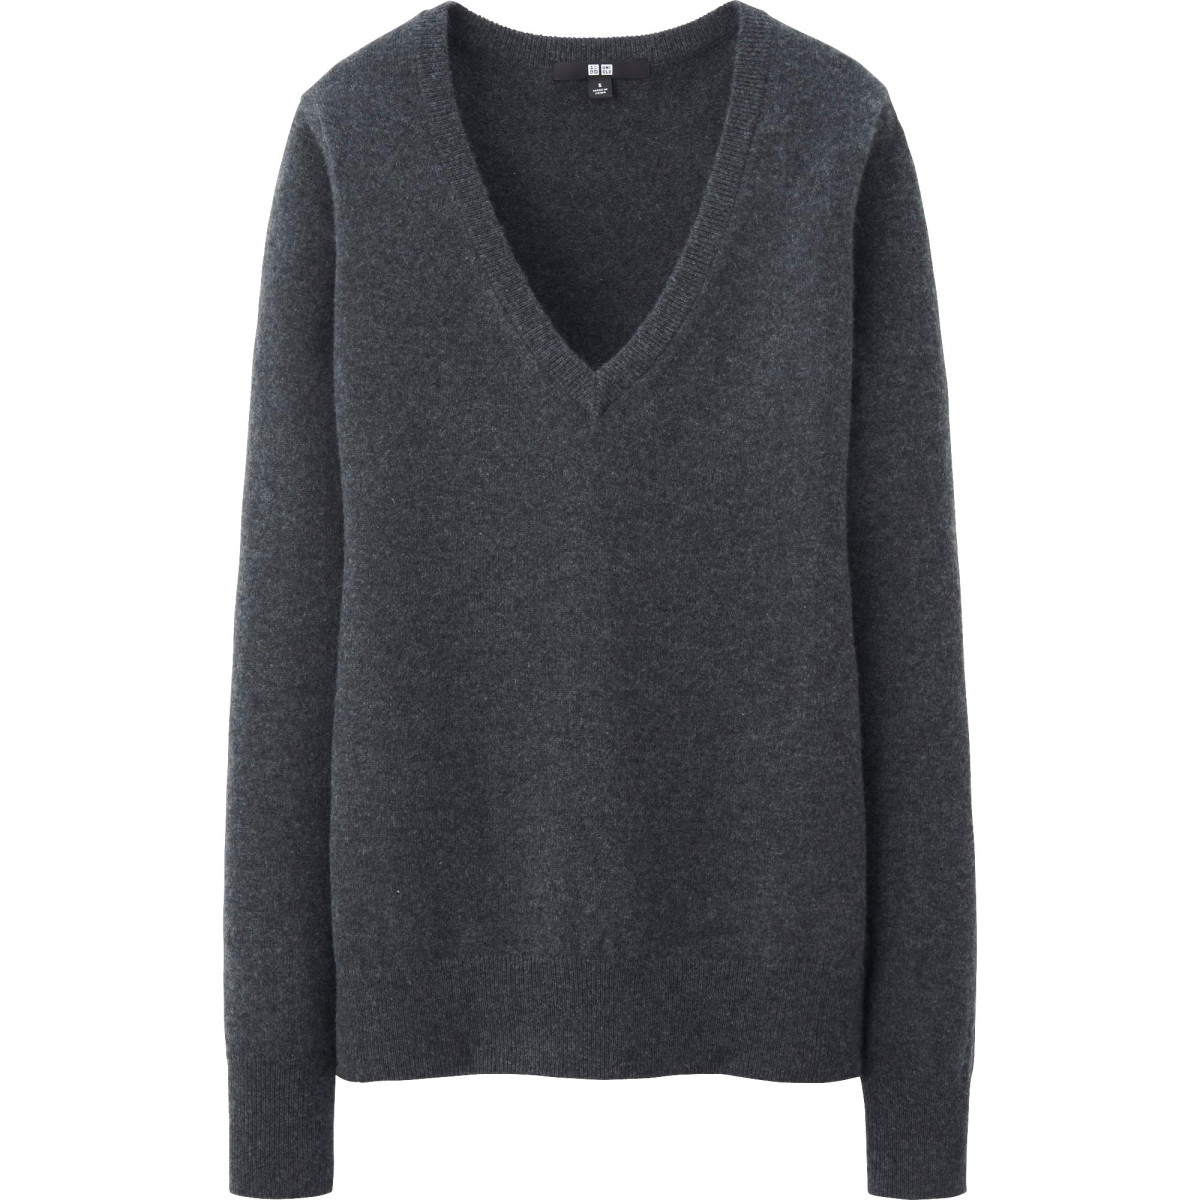 Lauren's Staple Cashmere V-Neck - Fashionista